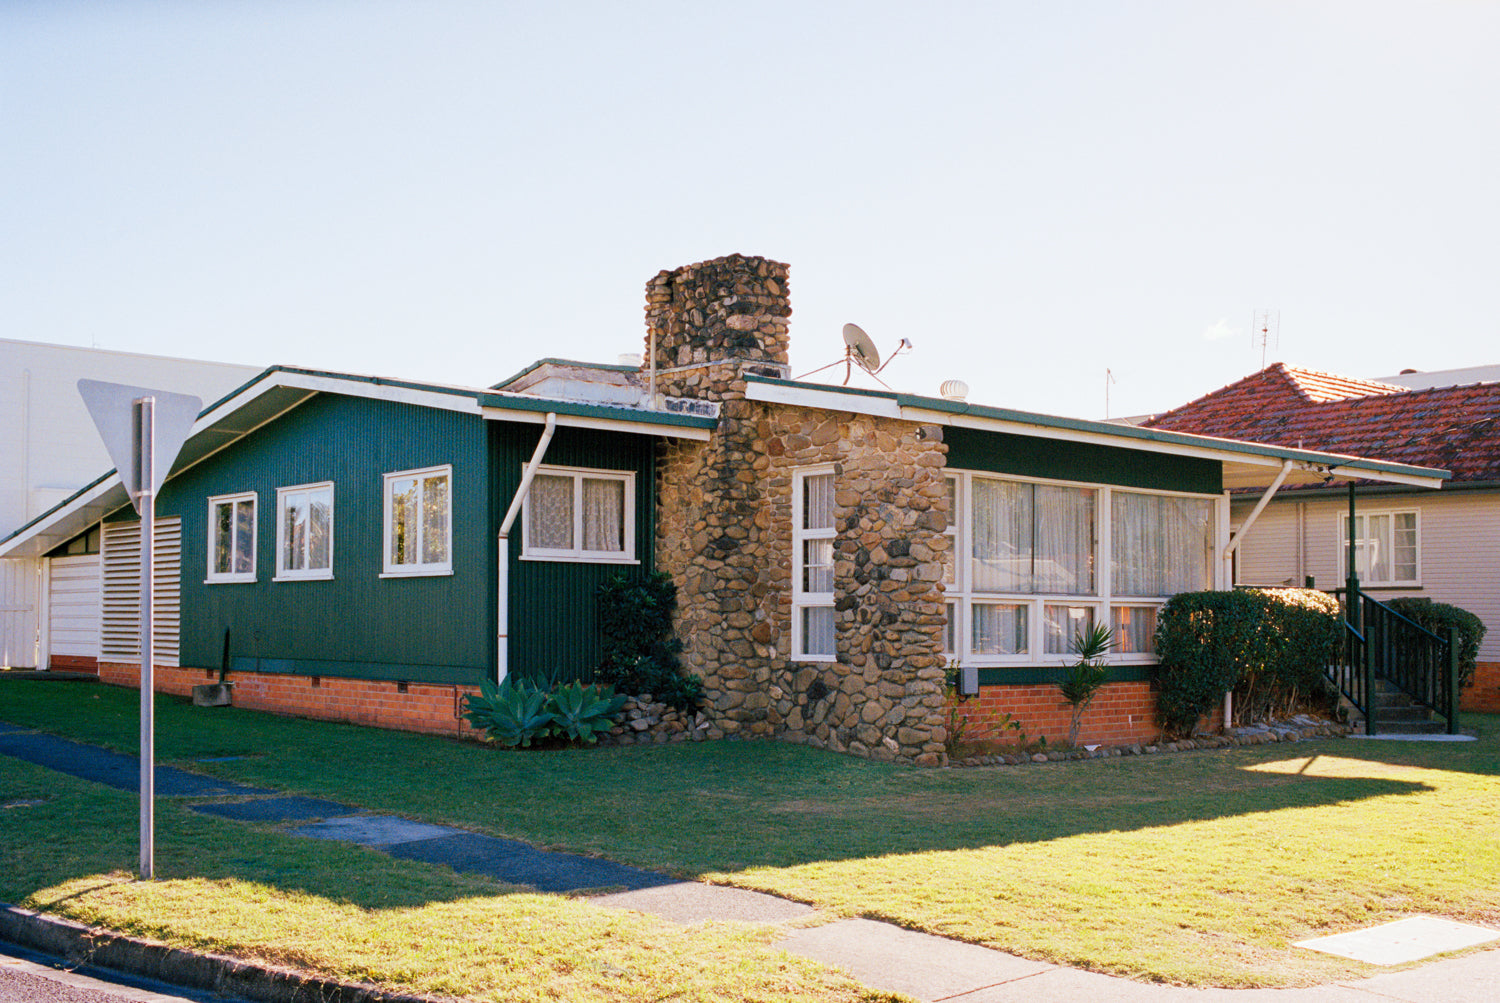 A photograph of a 1960's timber house on the Goldcoast. The house is green with a large stone fireplace & chimney, blue skies.